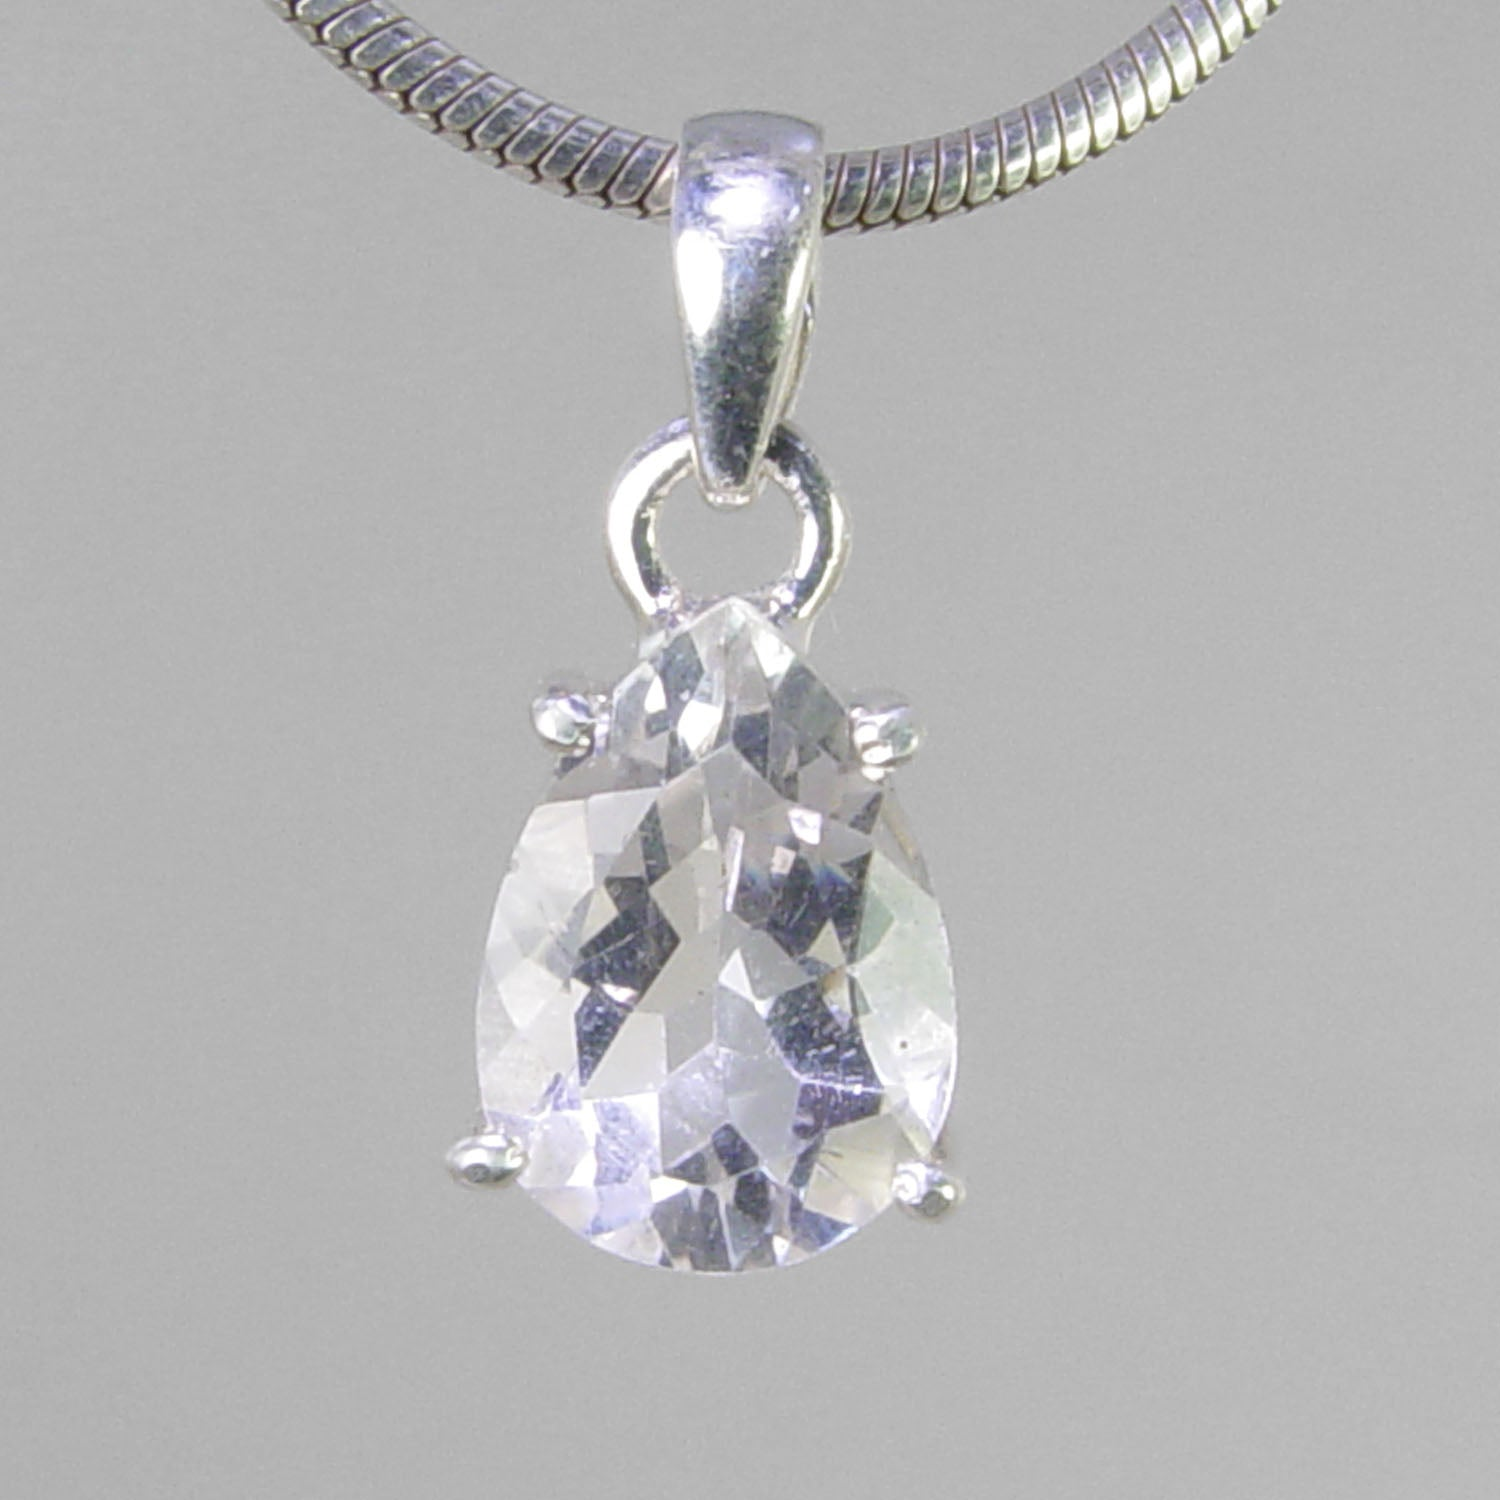 Crystal Quartz  4.8 ct Faceted Pear Shape Sterling Silver Pendant